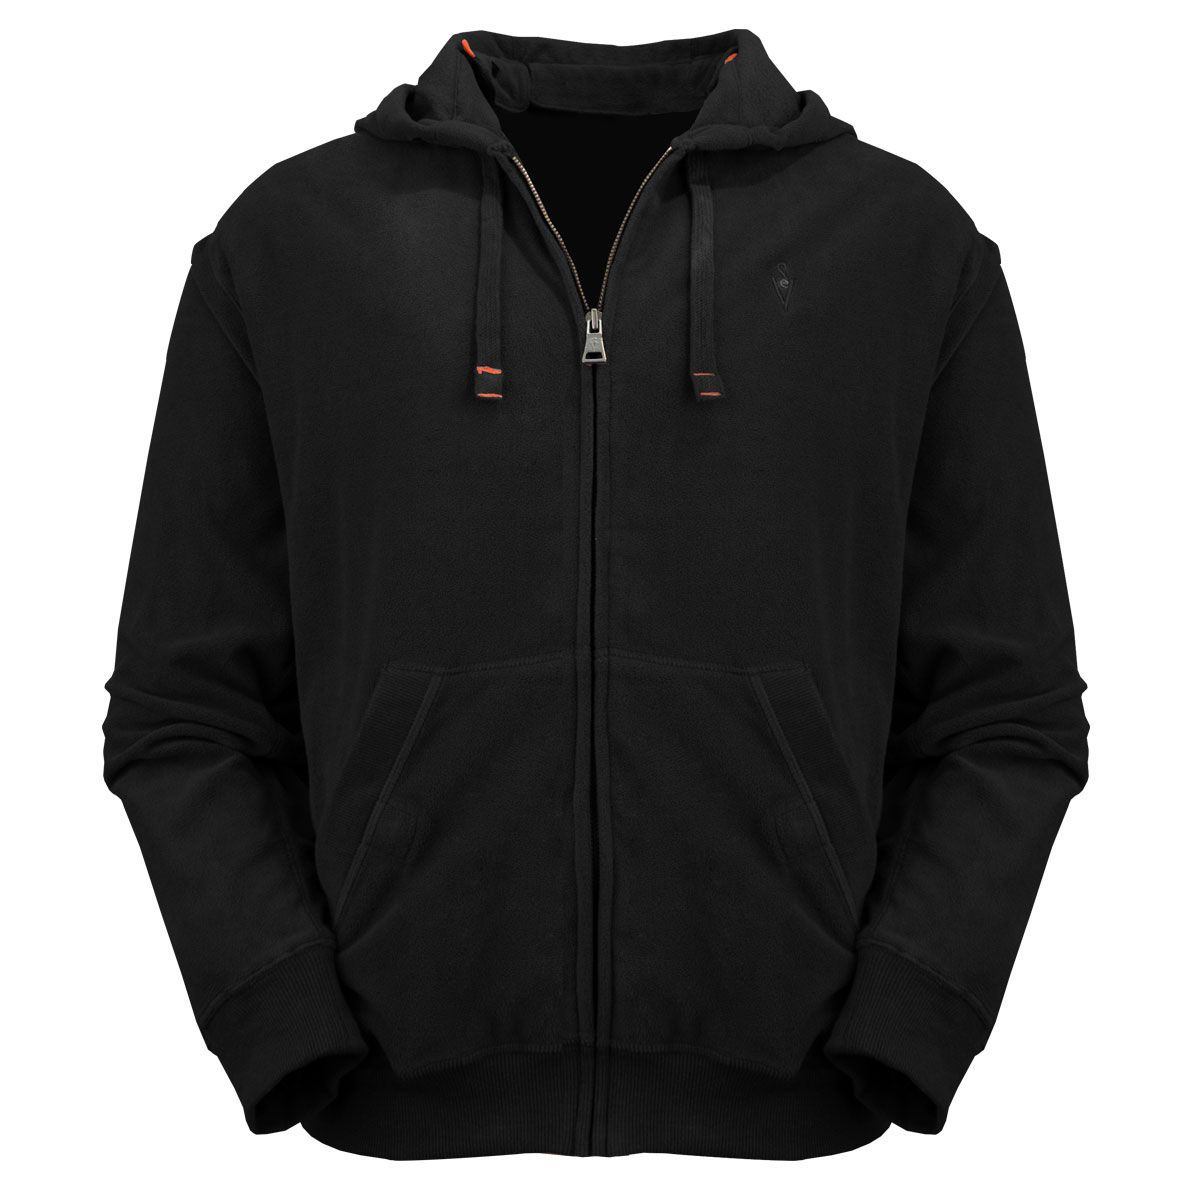 Microfleece Hoodies from SCOTTEVEST/SeV with Many Hidden Pockets ...